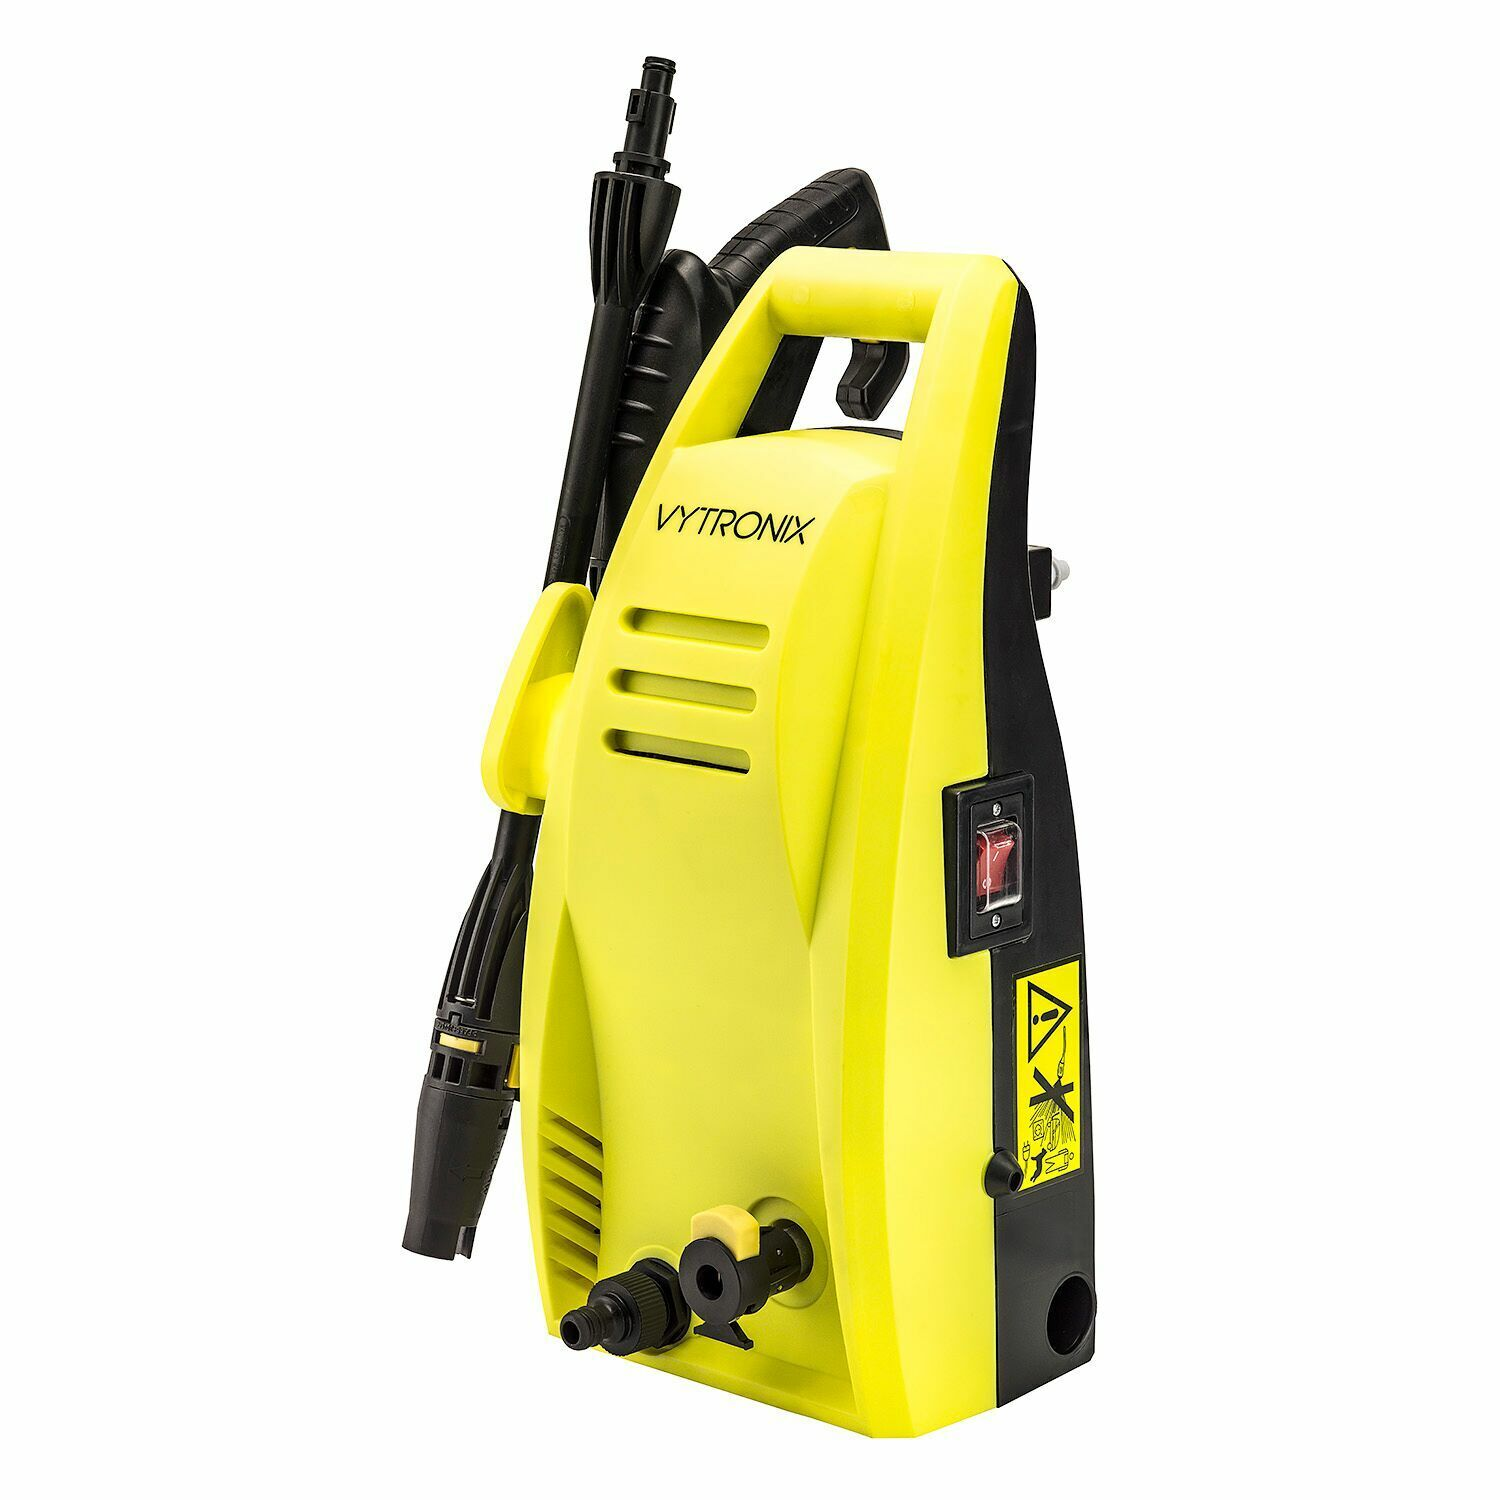 VYTRONIX Pressure Washer Powerful High Performance 1500W Jet Wash For Car Patio